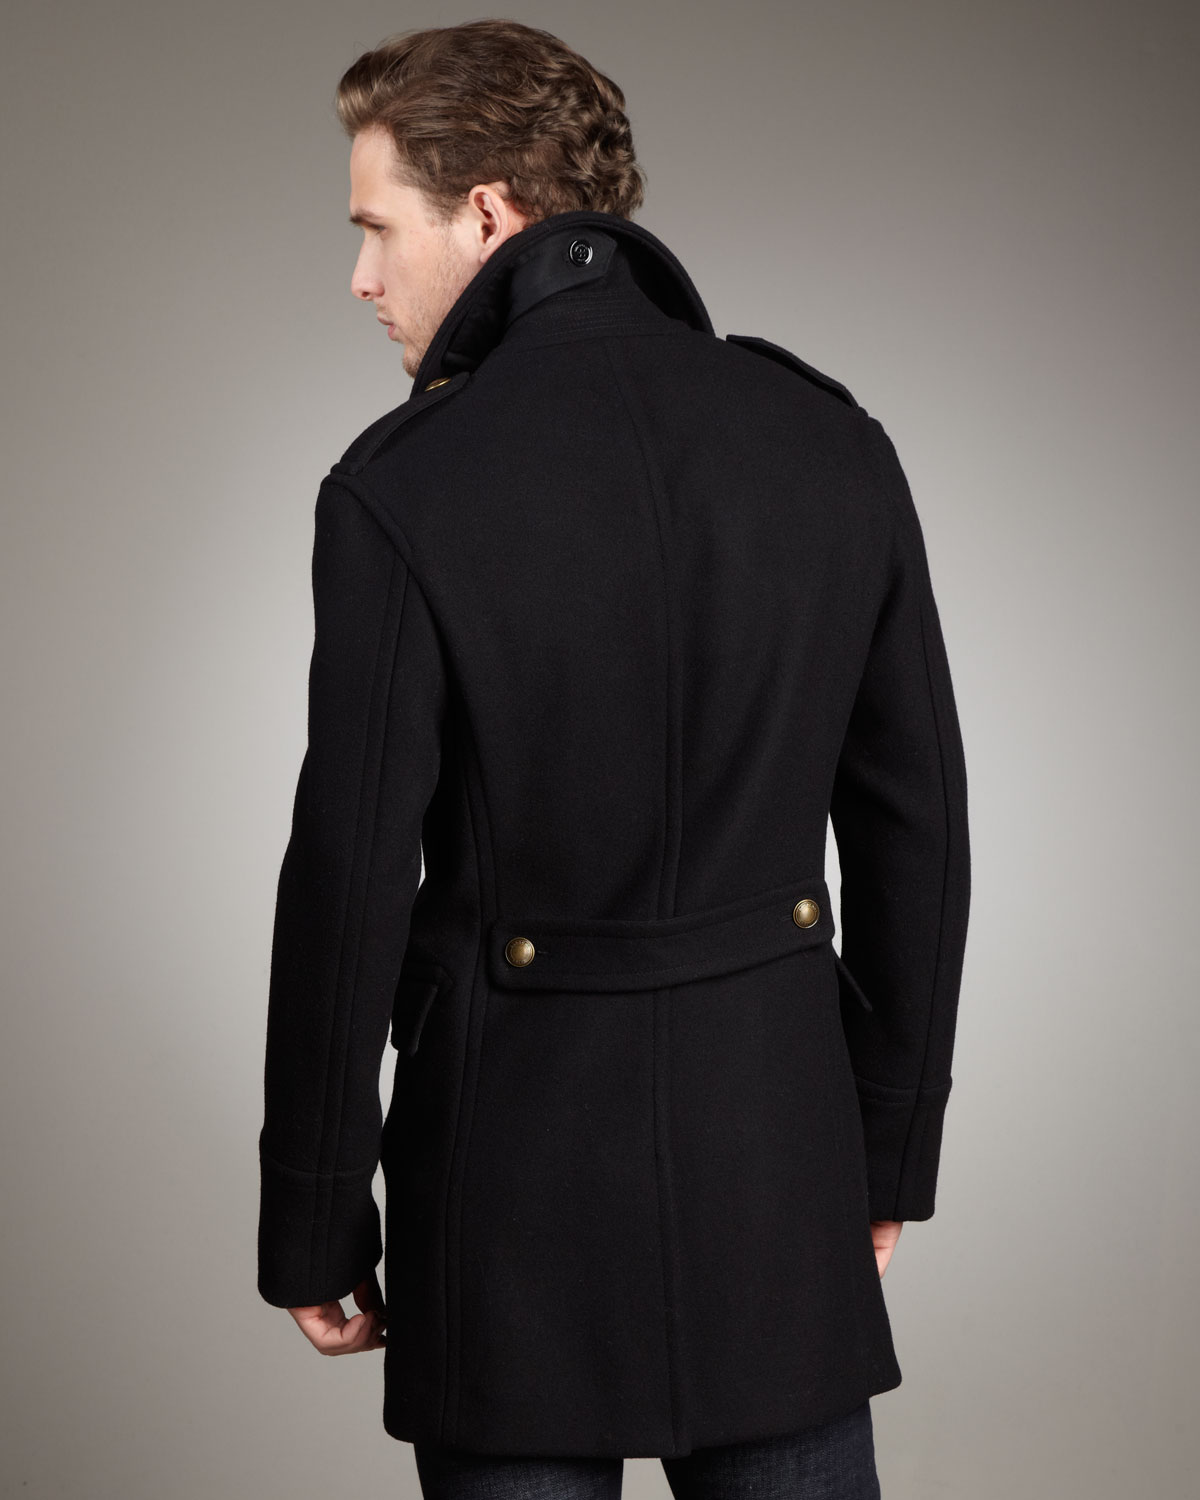 Black pea coat with gold buttons – Modern fashion jacket photo blog